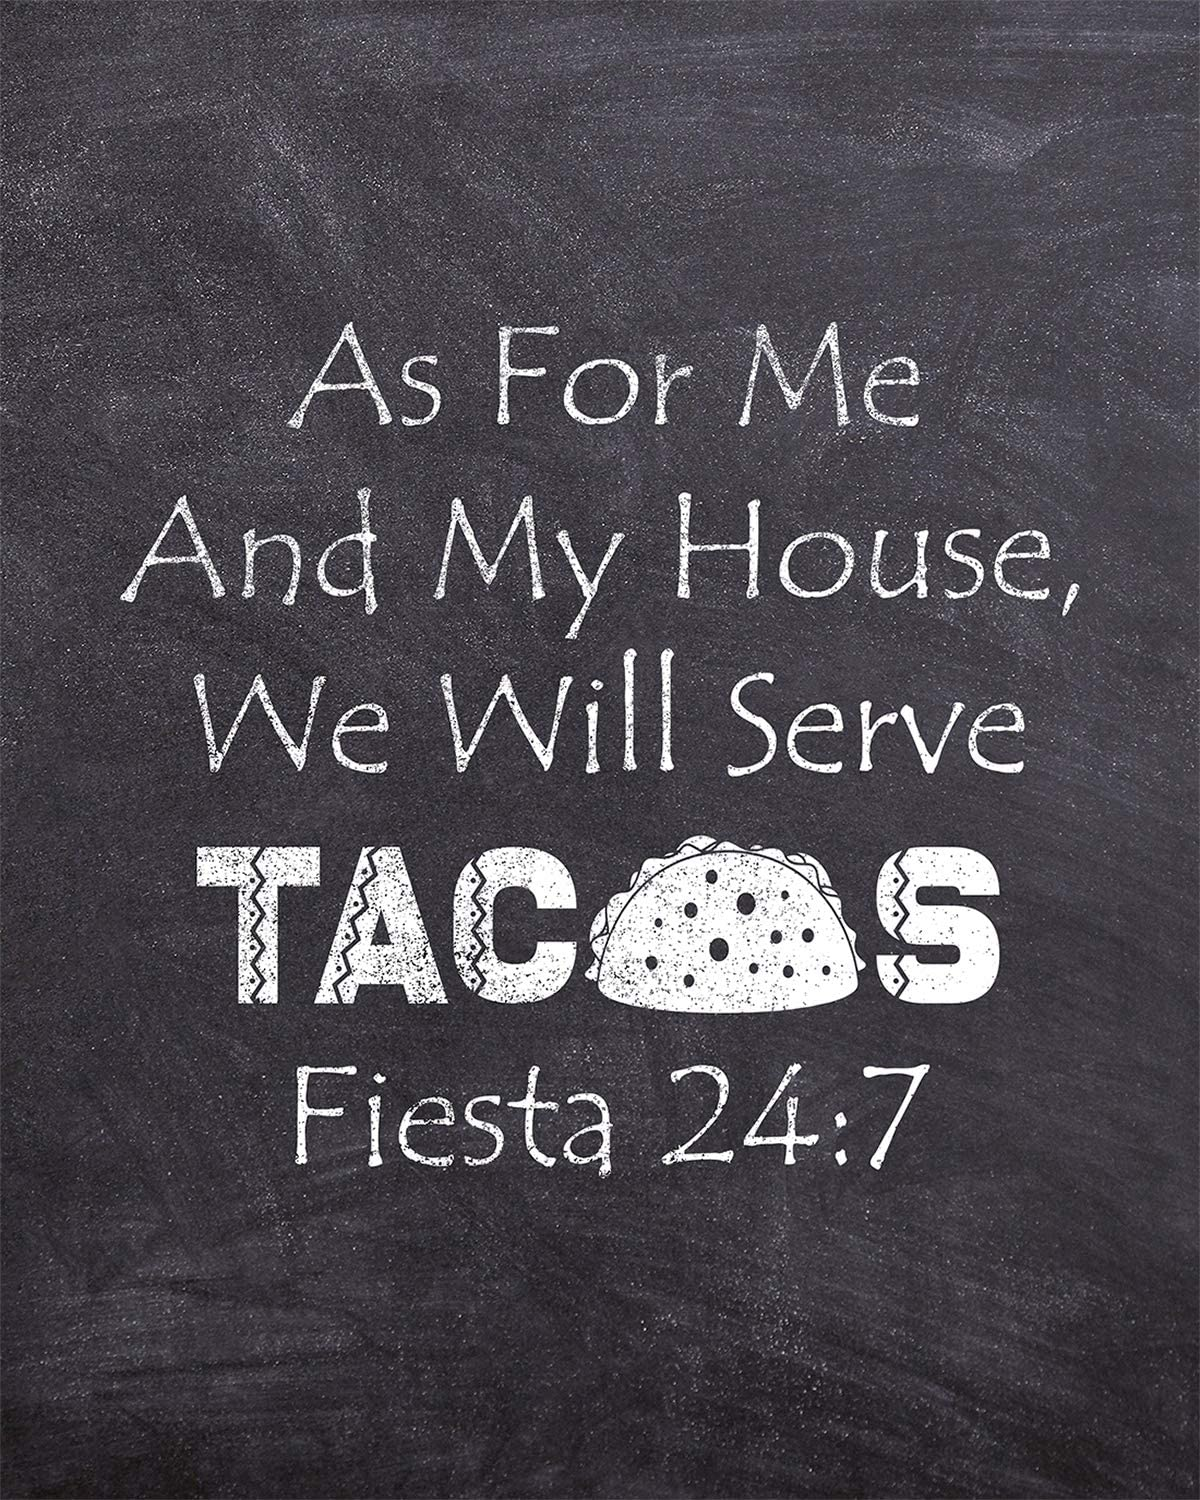 As For Me And My House, We Will Serve Tacos Fiesta 24:7 - Wall Decor Art Print on a black background - 8x10 unframed funny taco-themed print - novelty gift for relatives and friends